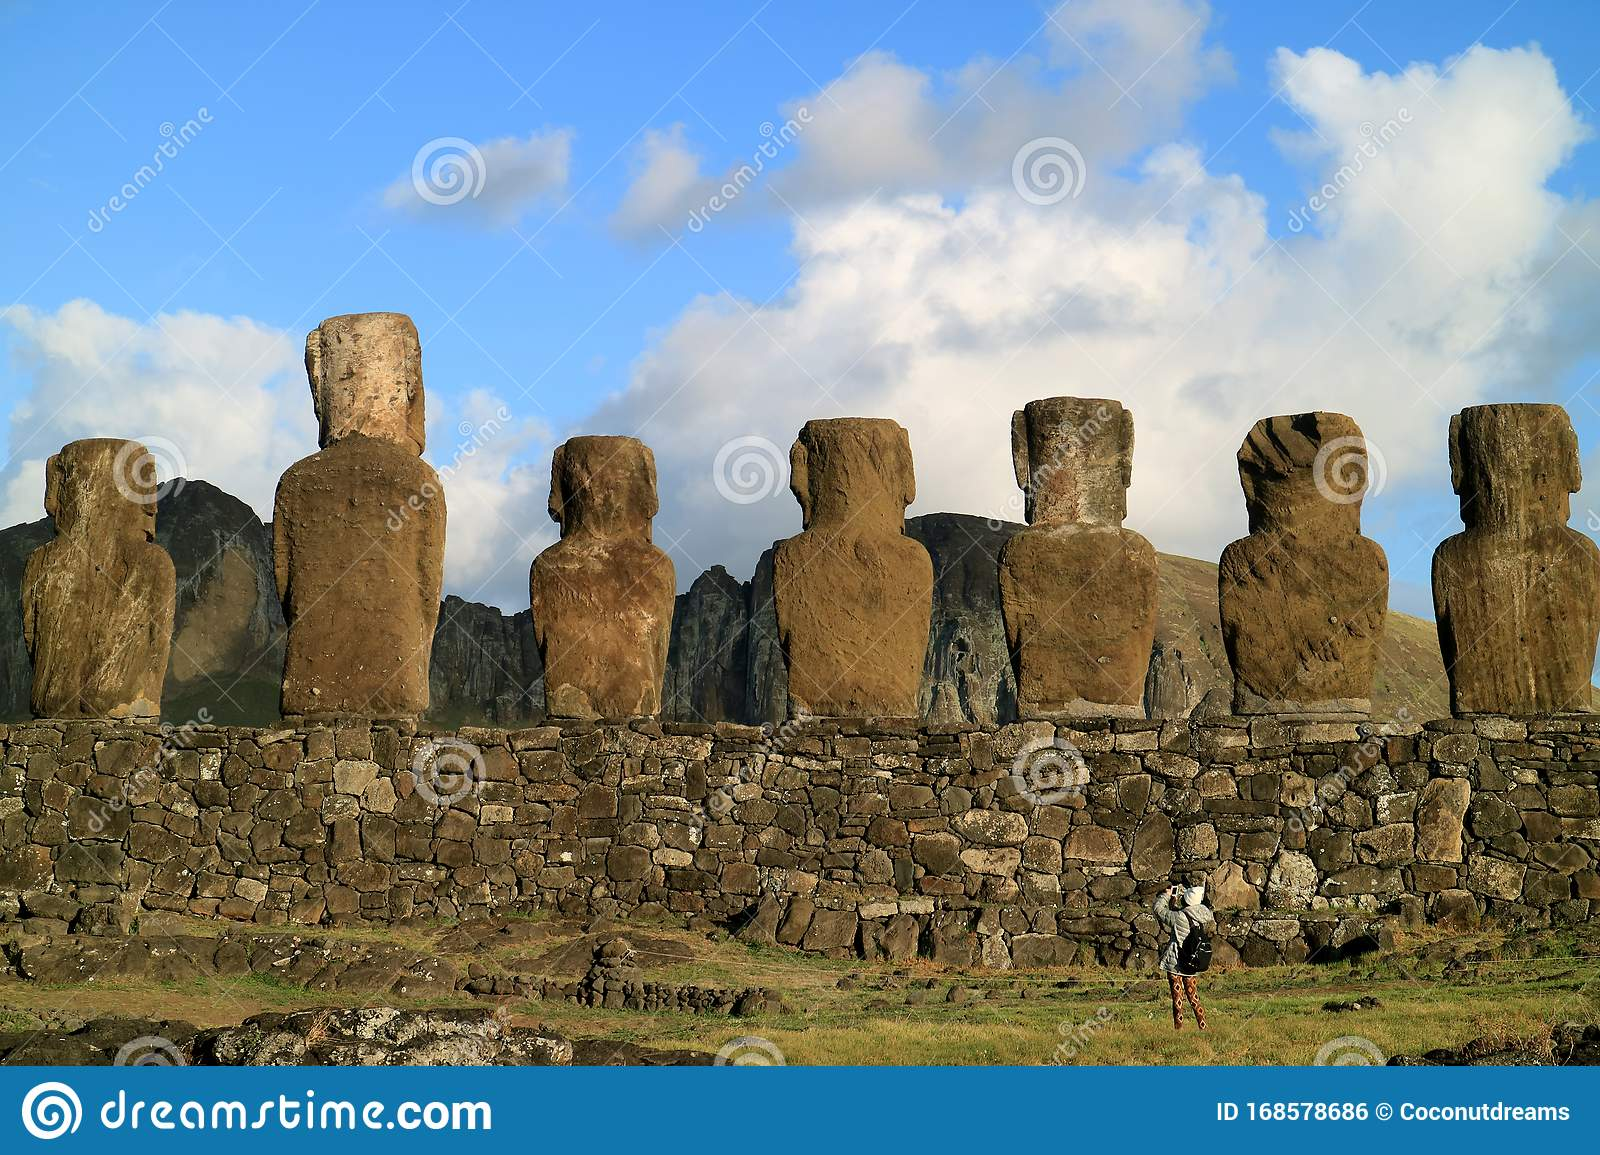 Amazing View Of The Back Of 15 Huge Moai Statues Of Ahu